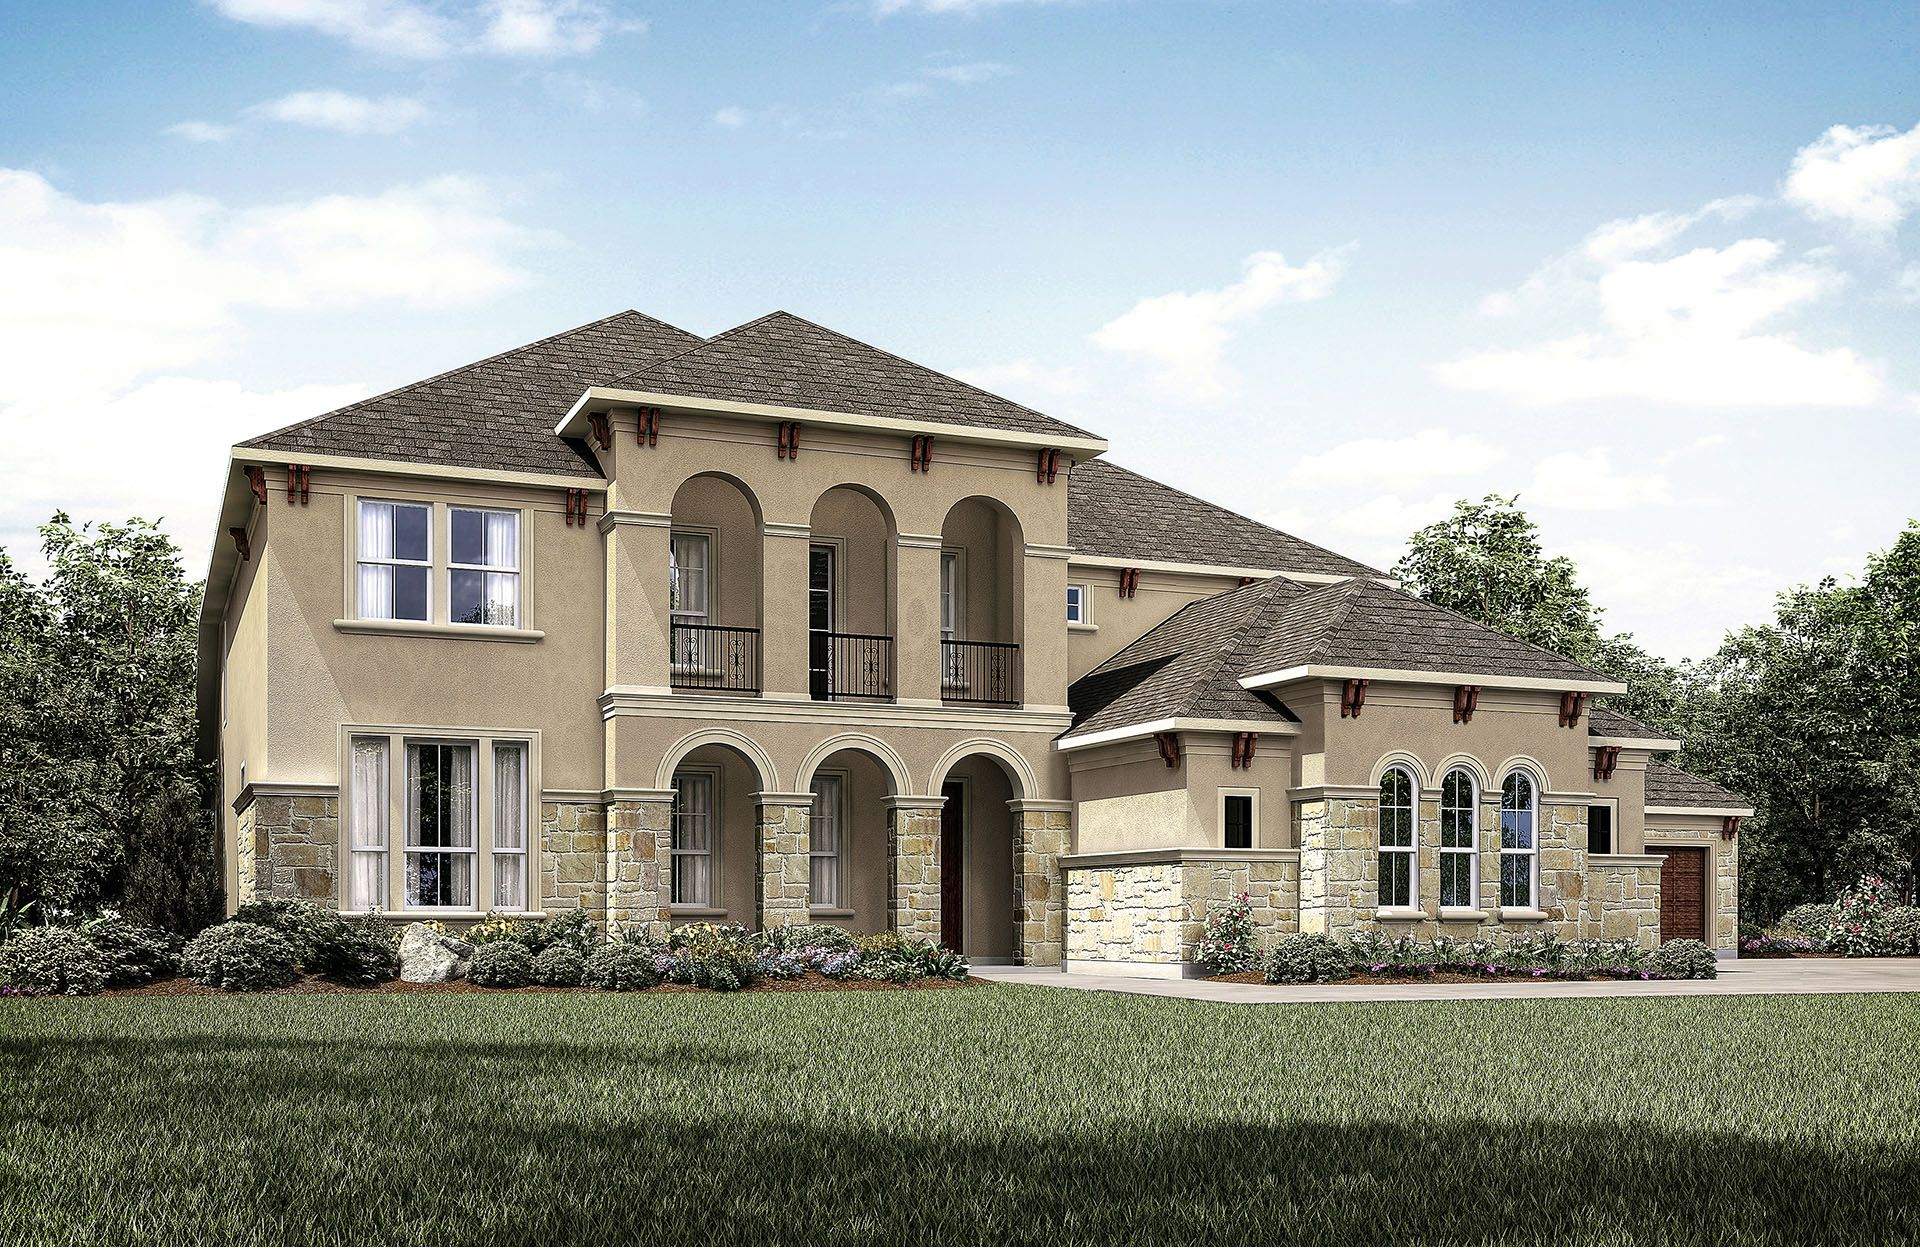 Unifamiliar por un Venta en Woodtrace - Elmsdale 33823 Mill Creek Way Pinehurst, Texas 77362 United States